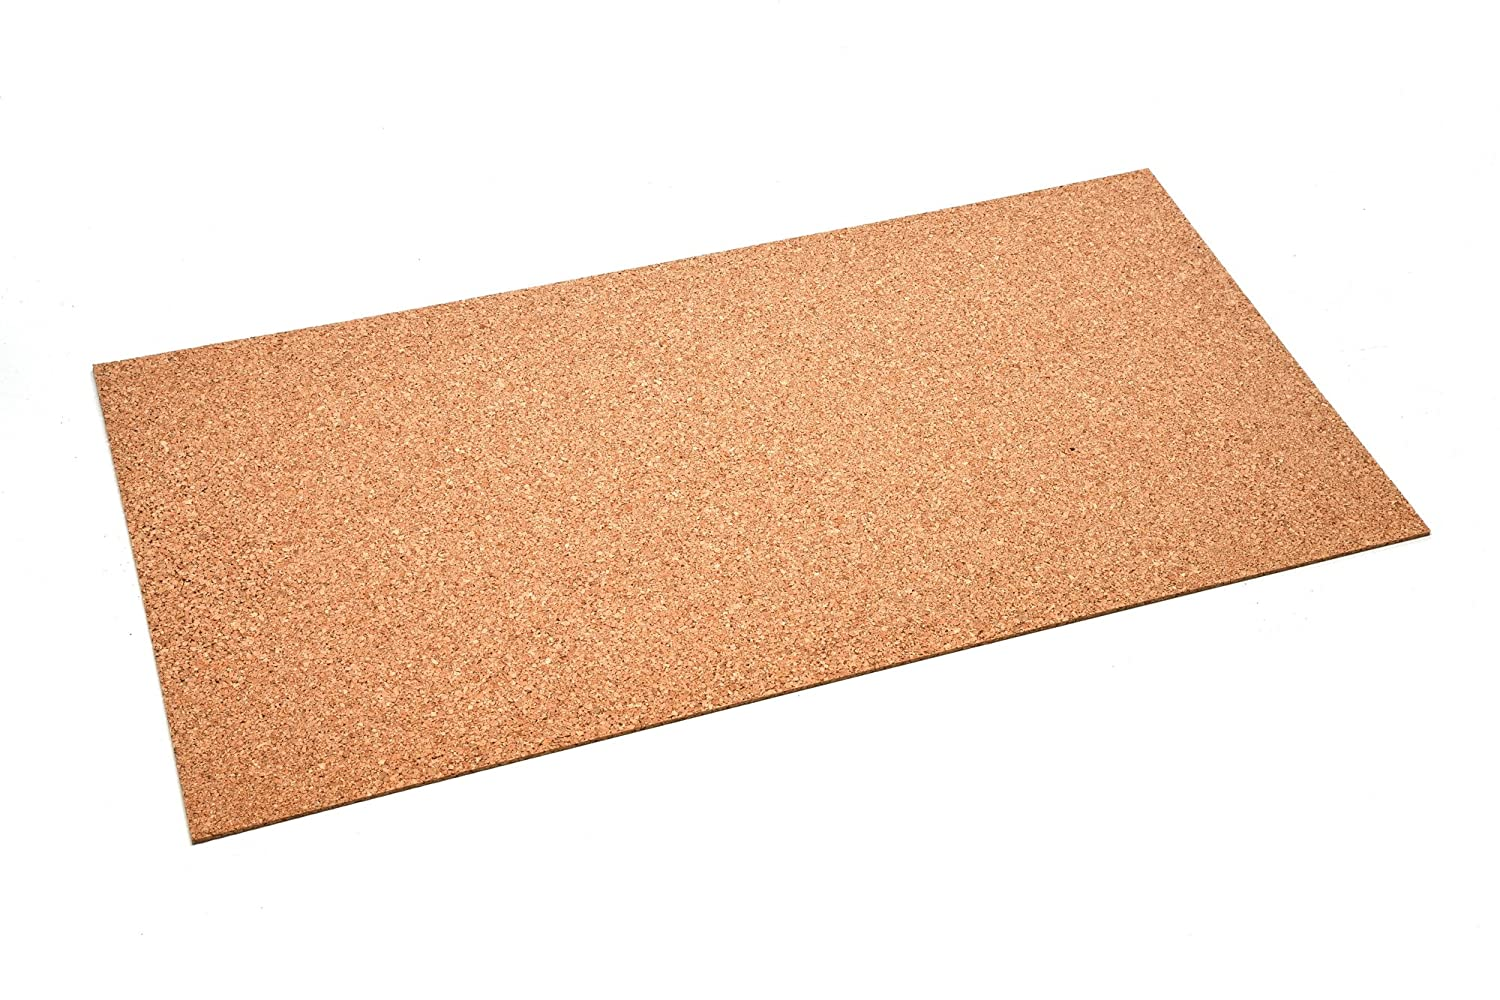 Pin Board Cork Sheet 50 x 100 cm 2 mm Thick High-Quality Cork Sheet Flexible and Antistatic acerto